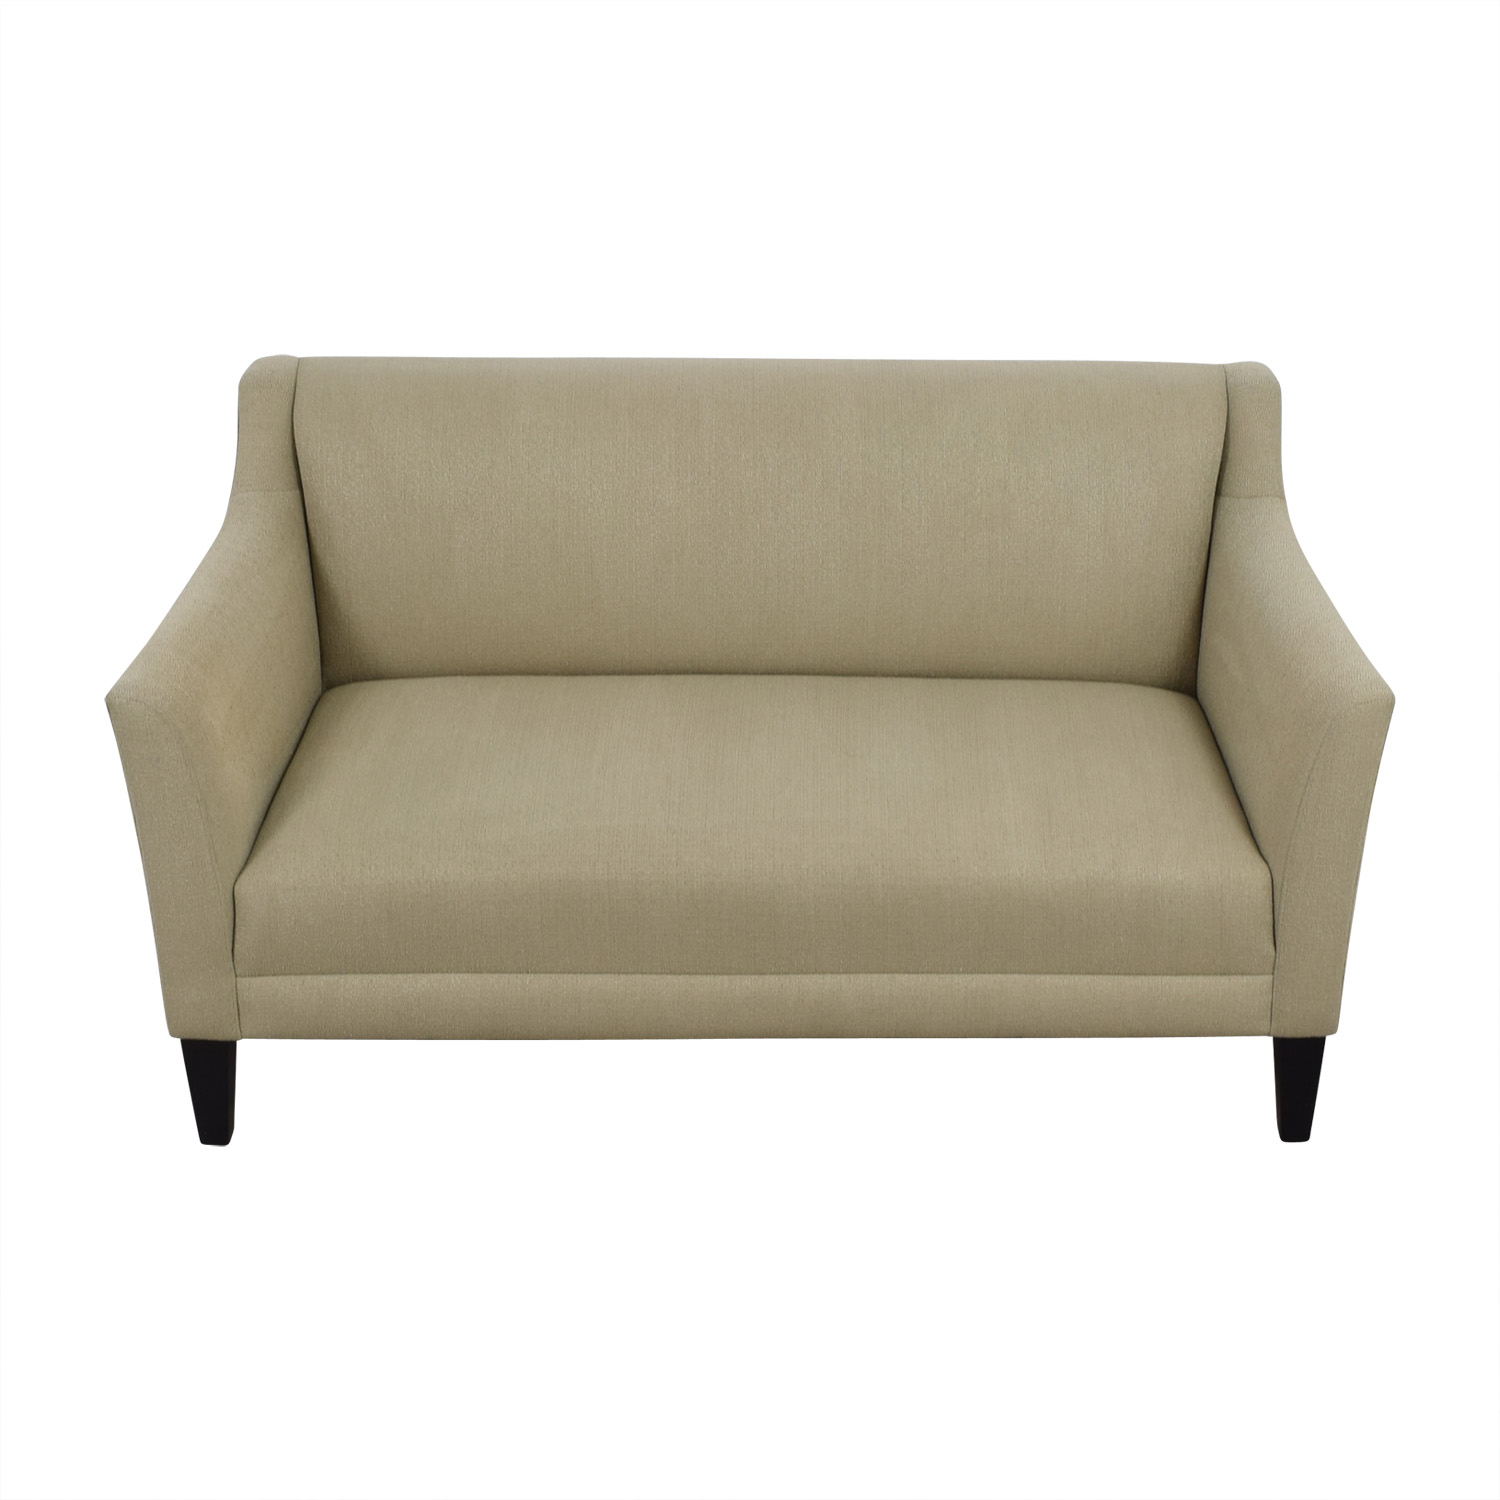 Crate & Barrel Crate & Barrel Margot Platinum Beige Loveseat Loveseats